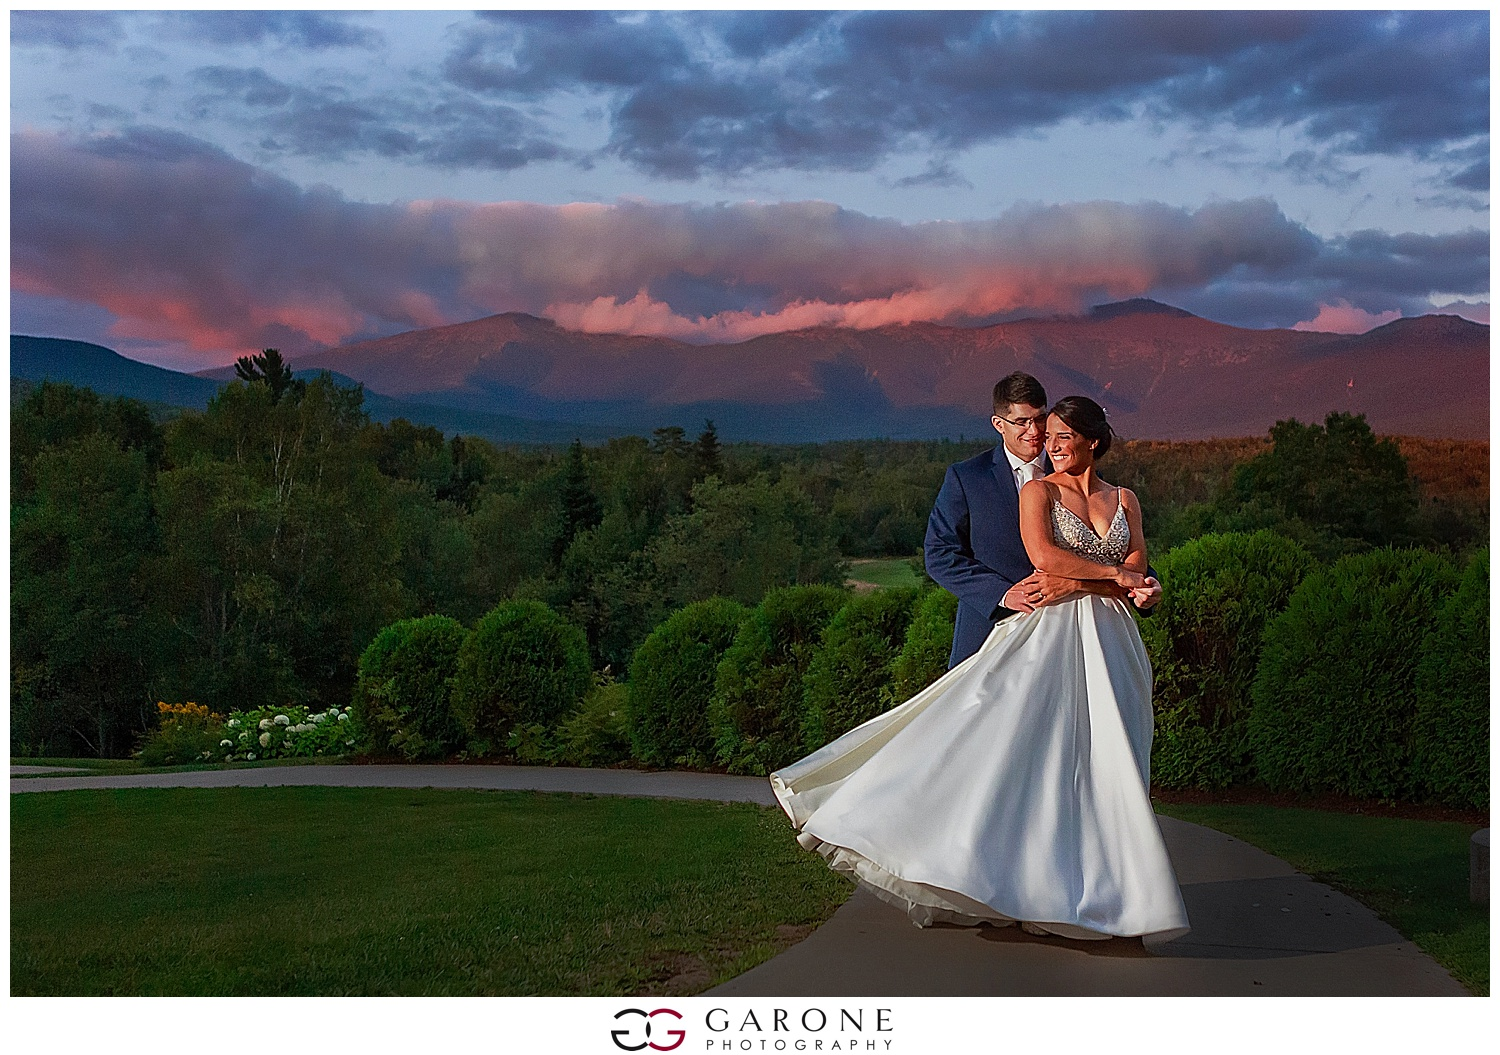 Omni_Mount_Washington_hotel_Wedding_White_Mountain_Wedding_Garone_Photography_0043.jpg